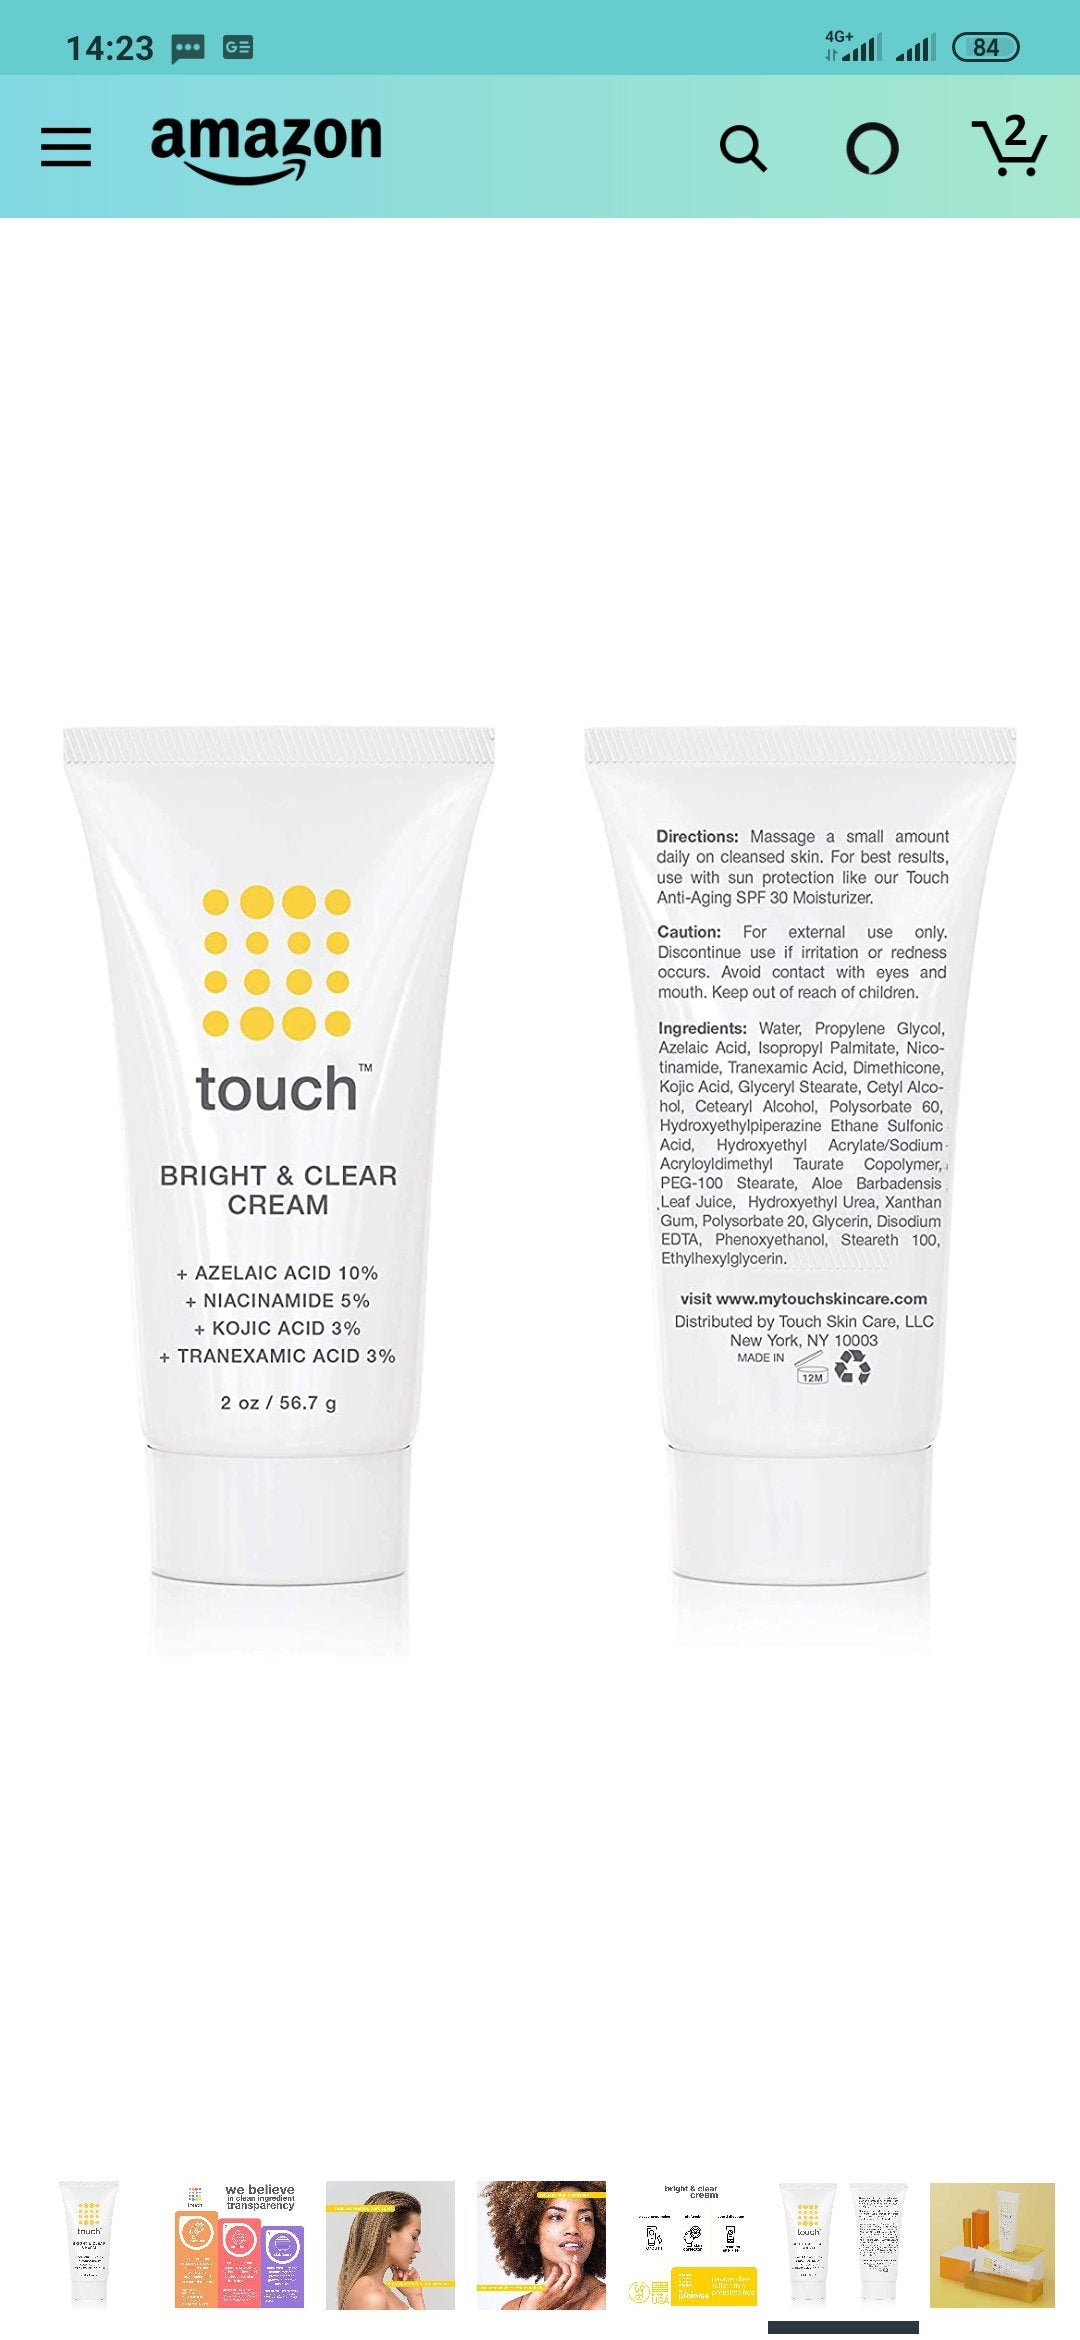 [Product Question] Touch Bright and Clear Serum is now a cream. Has anyone used this?